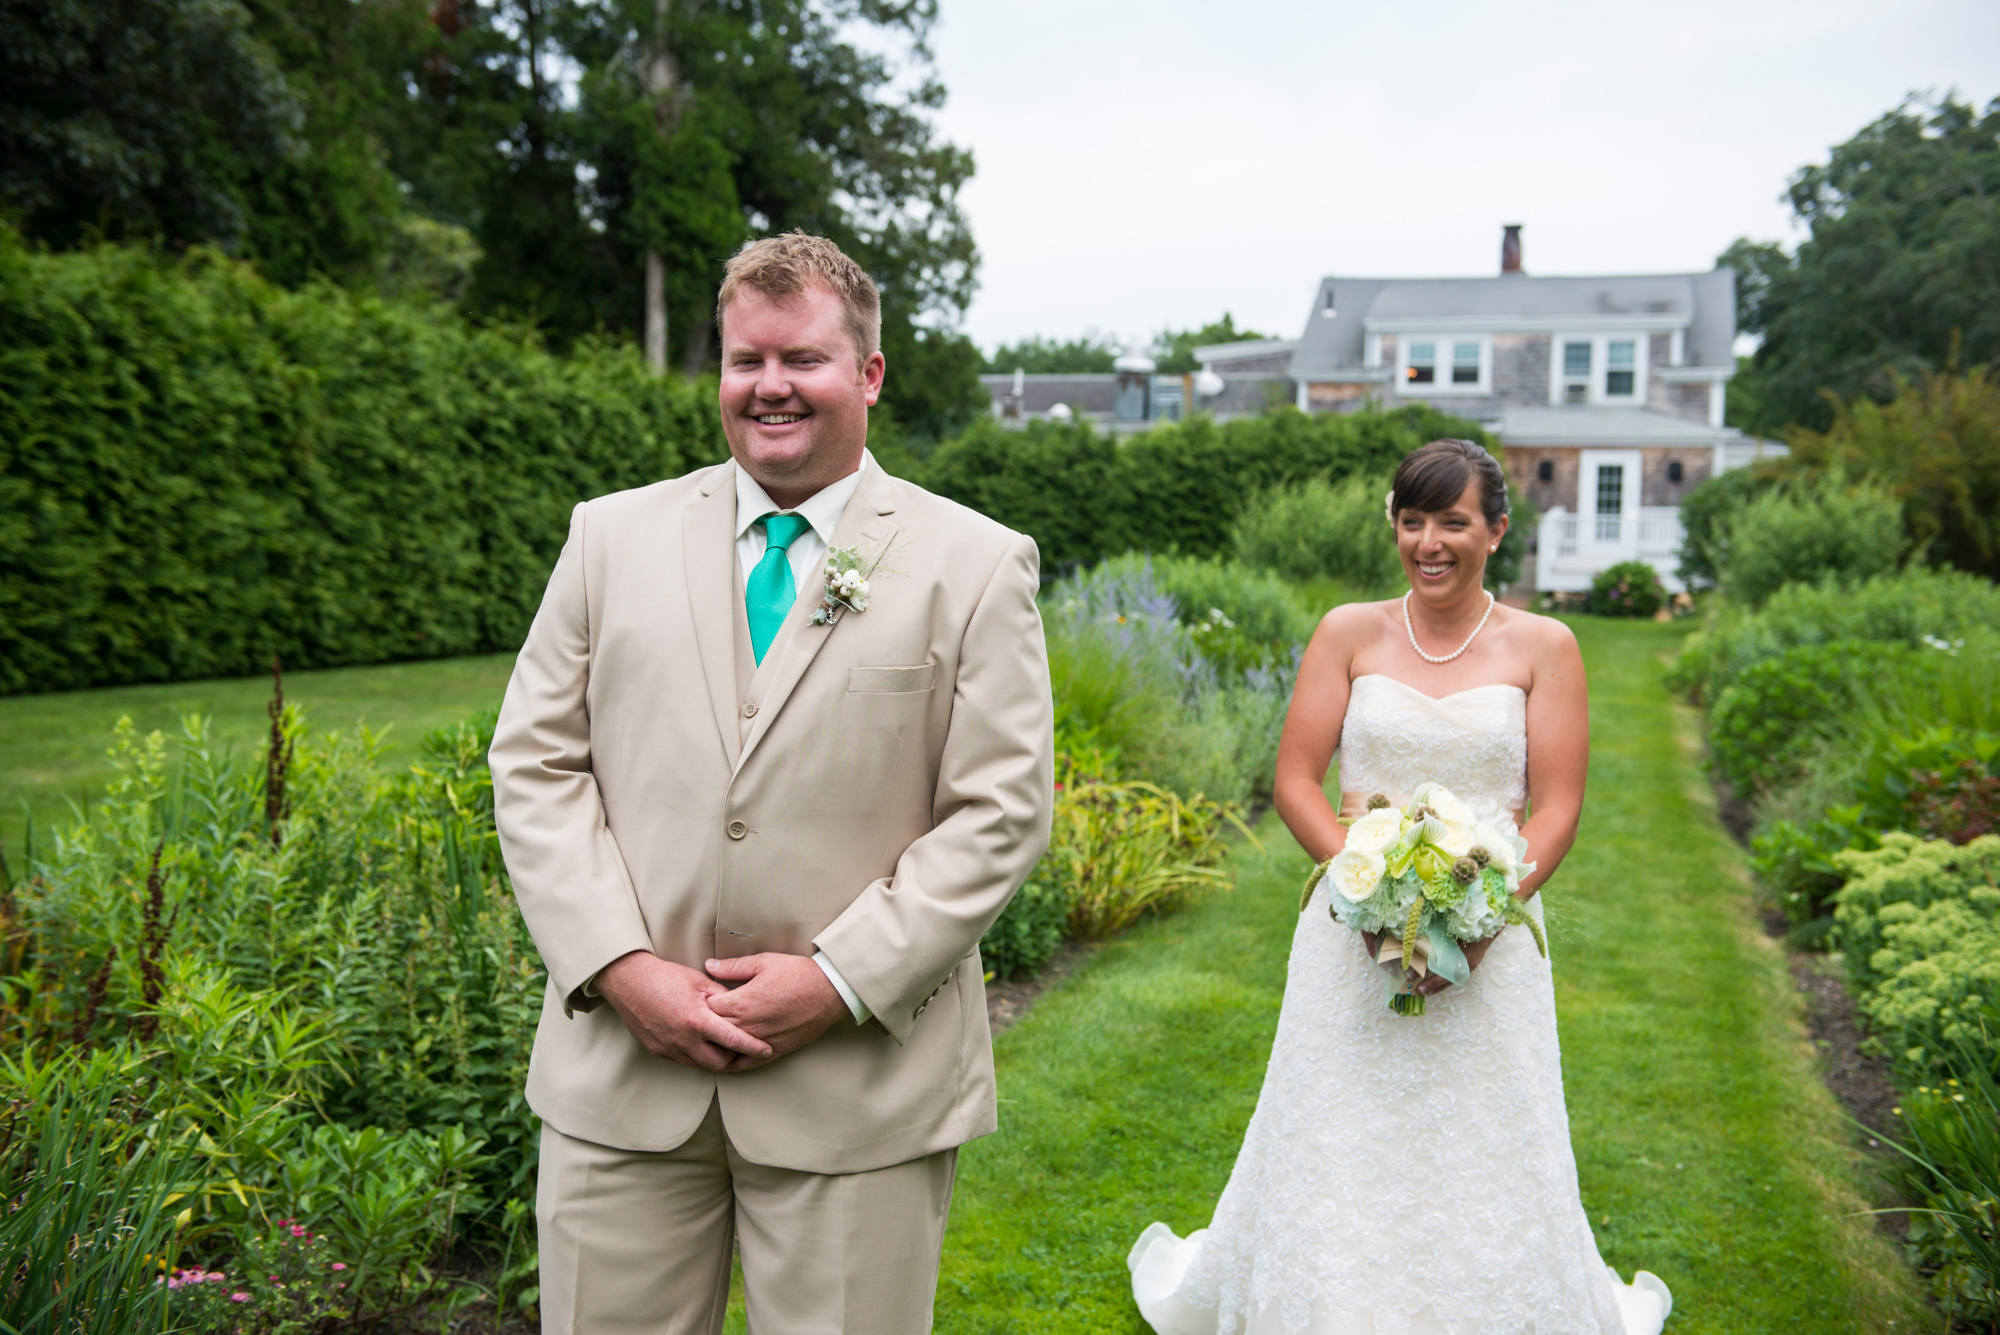 A bride and groom have their first look at Lambert's Cove Inn photo by David Welch Photography